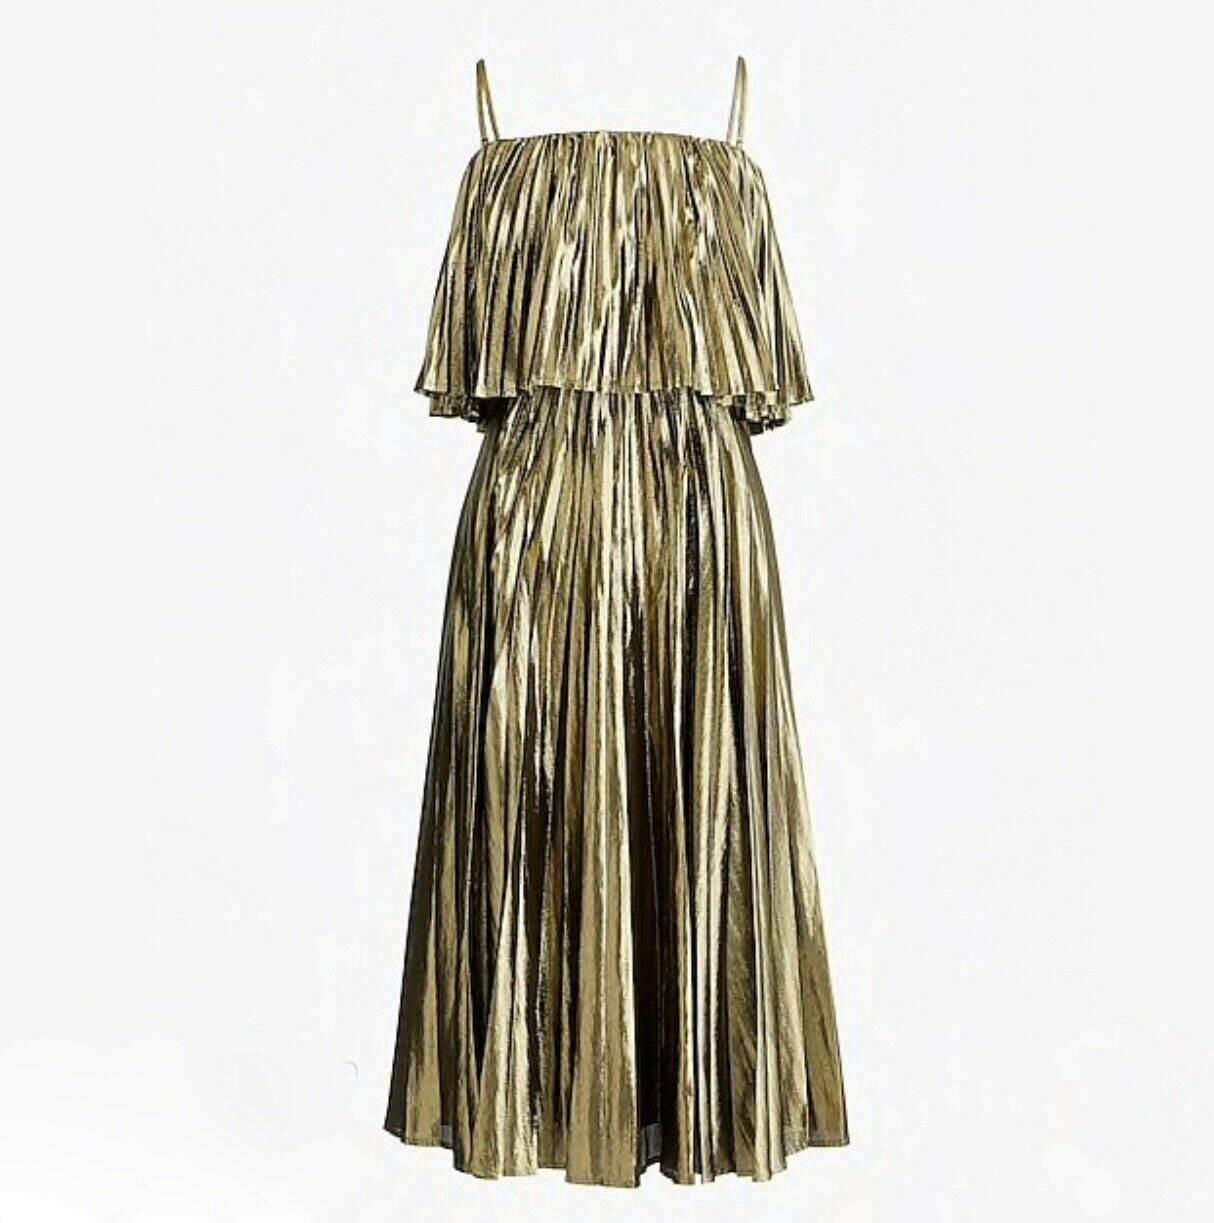 J.CREW COLLECTION PLEATED MIDI DRESS IN gold LAME SIZE 6 K4474  298